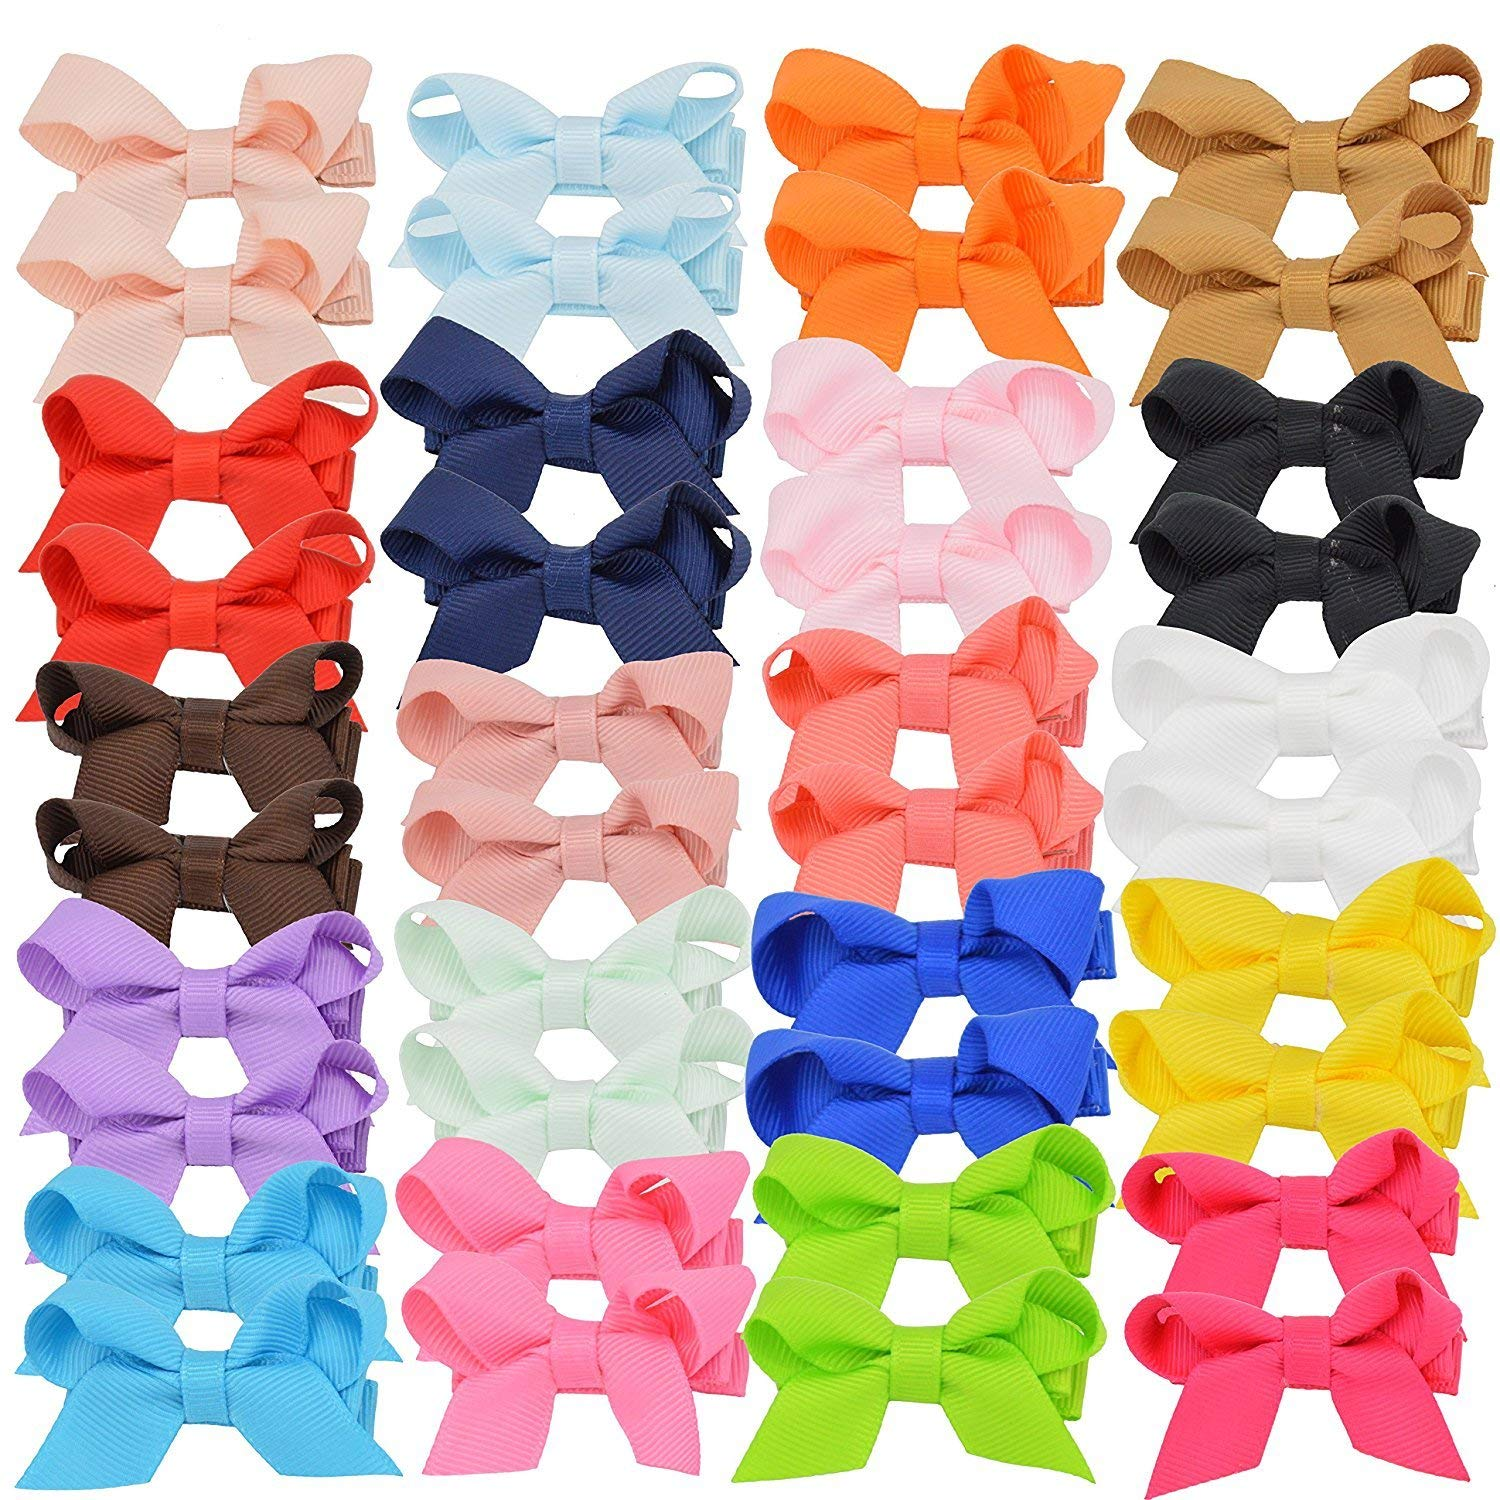 bbdc3323787d1 Get Quotations · Baby Girls Hair Bows Ribbon Covered Hair Clips Barrettes  for Baby Fine Hair Toddlers Teens